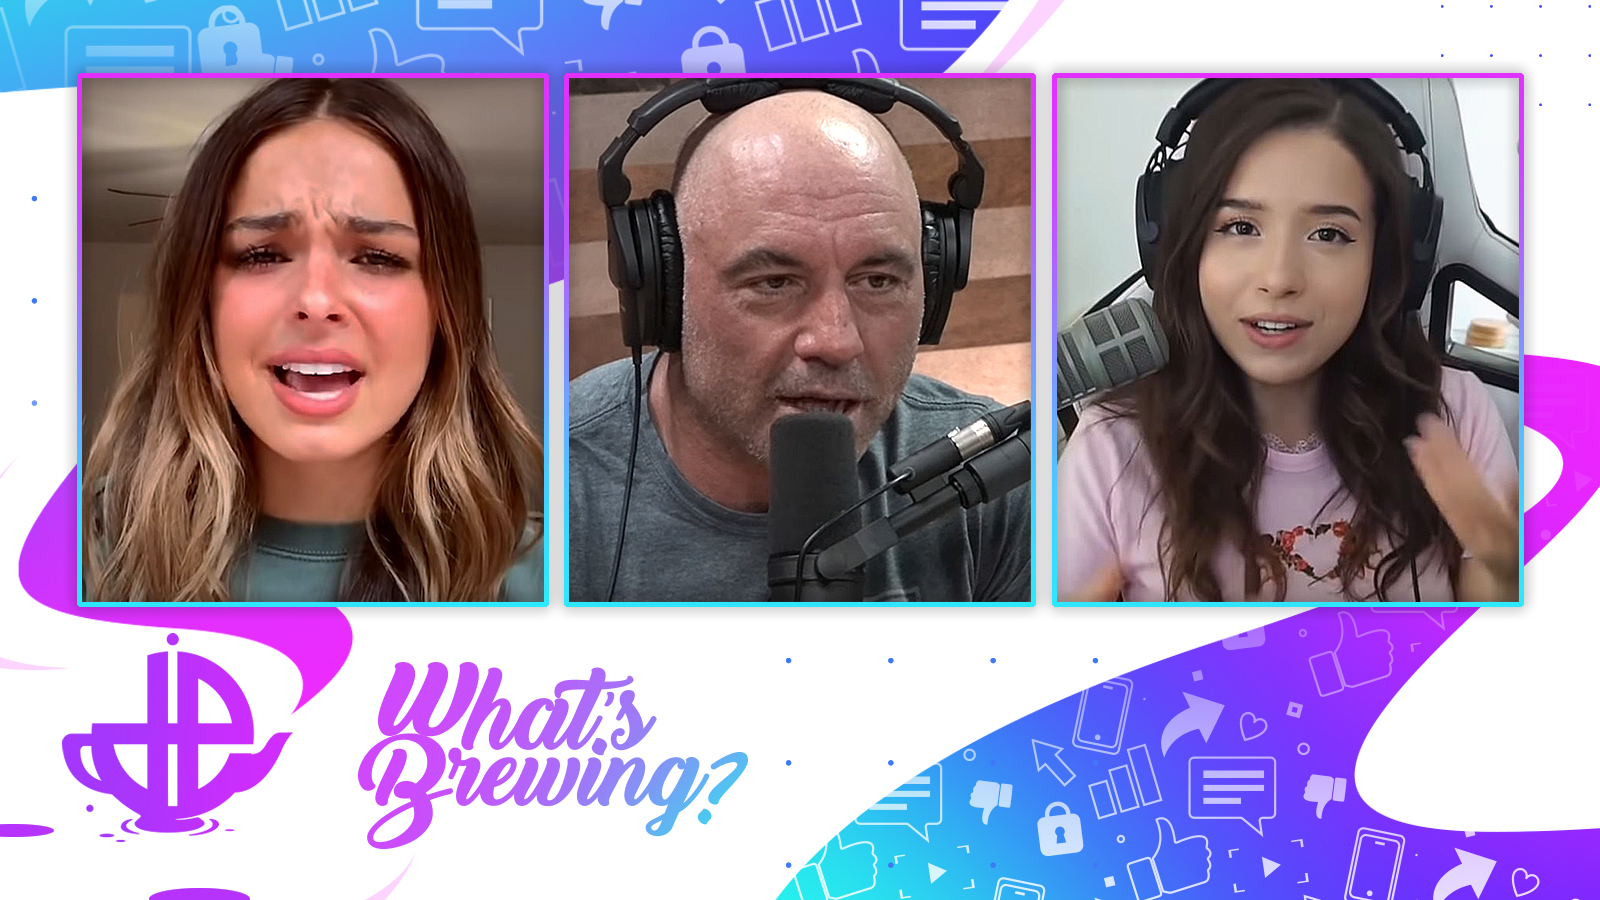 Joe Rogan, Addison Rae, and Pokimane are shown on the What's Brewing logo.